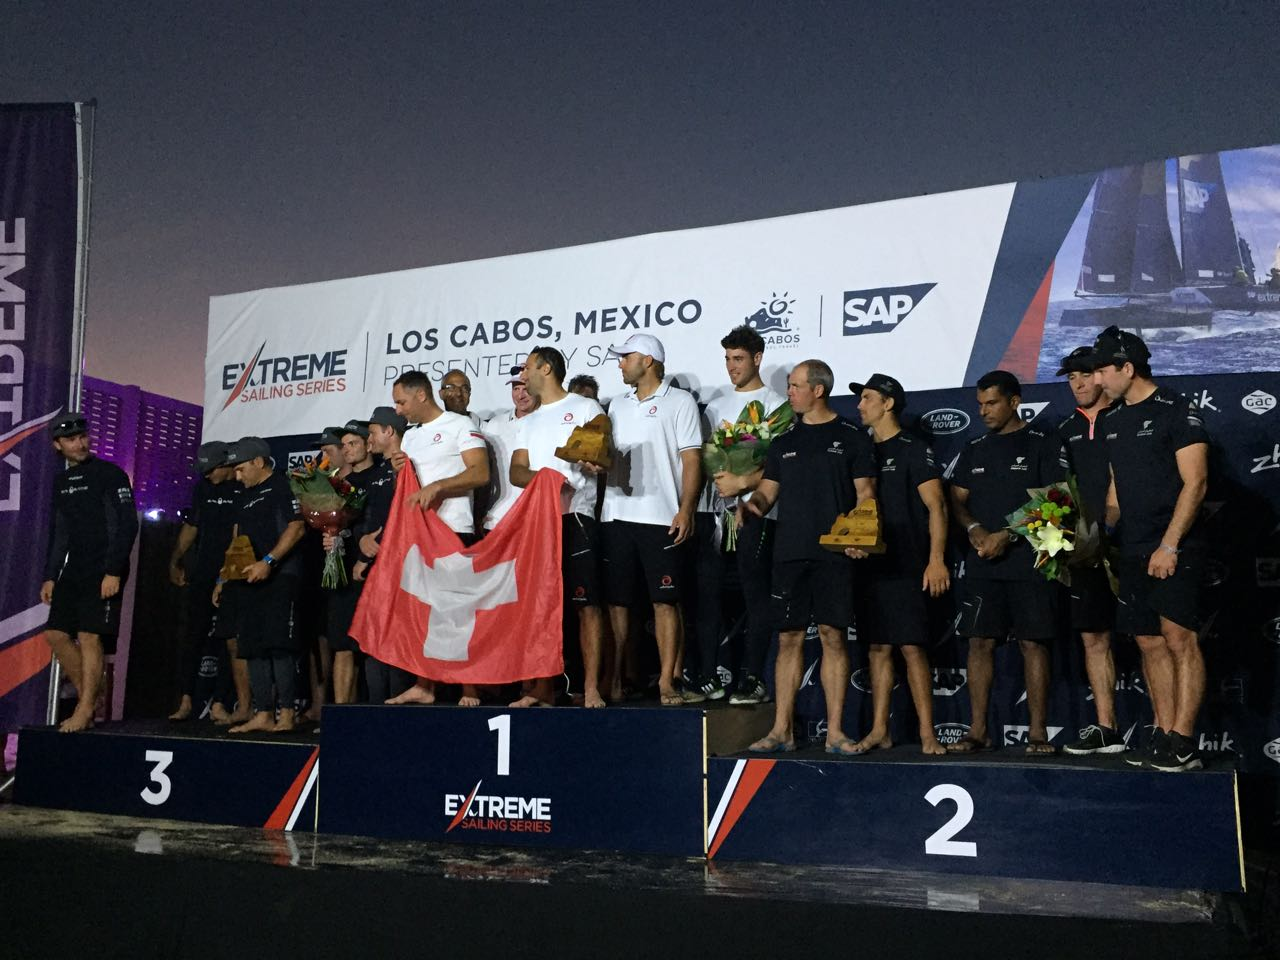 SAP Sailing Team es campeón de Extreme Sailing Series